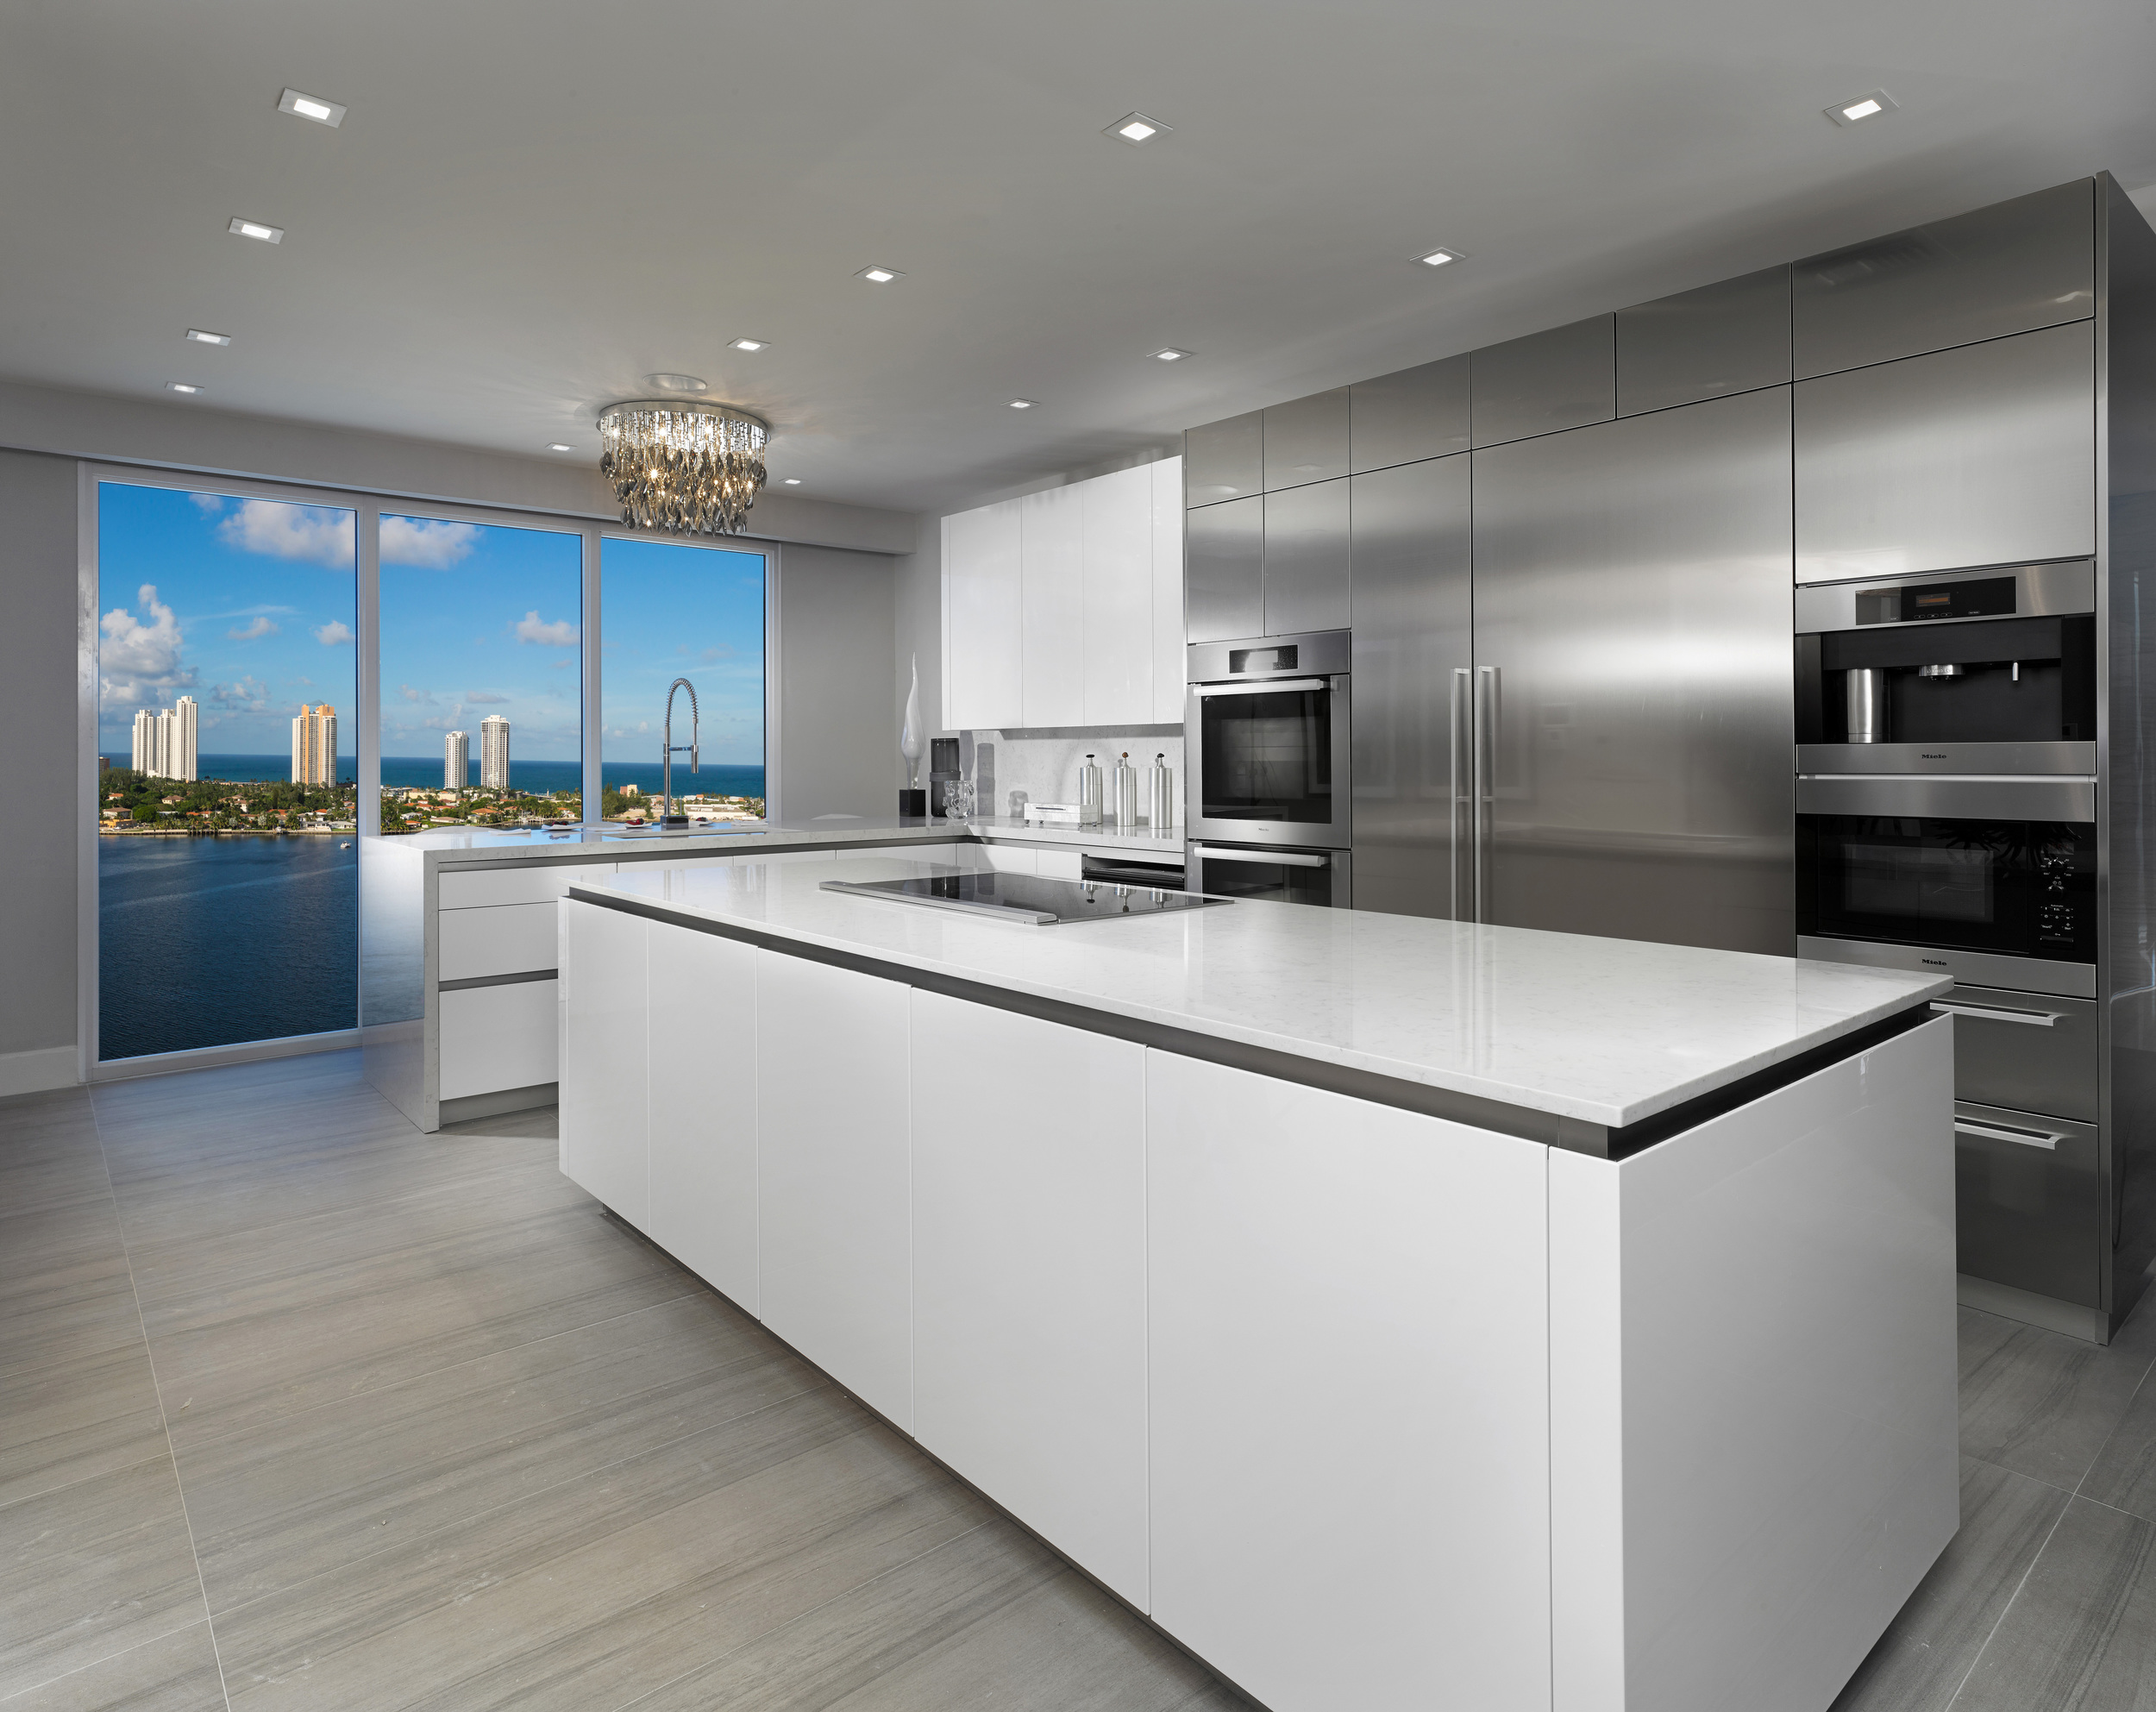 4-RESIDENCES-PRIVE_KITCHEN_A.jpg